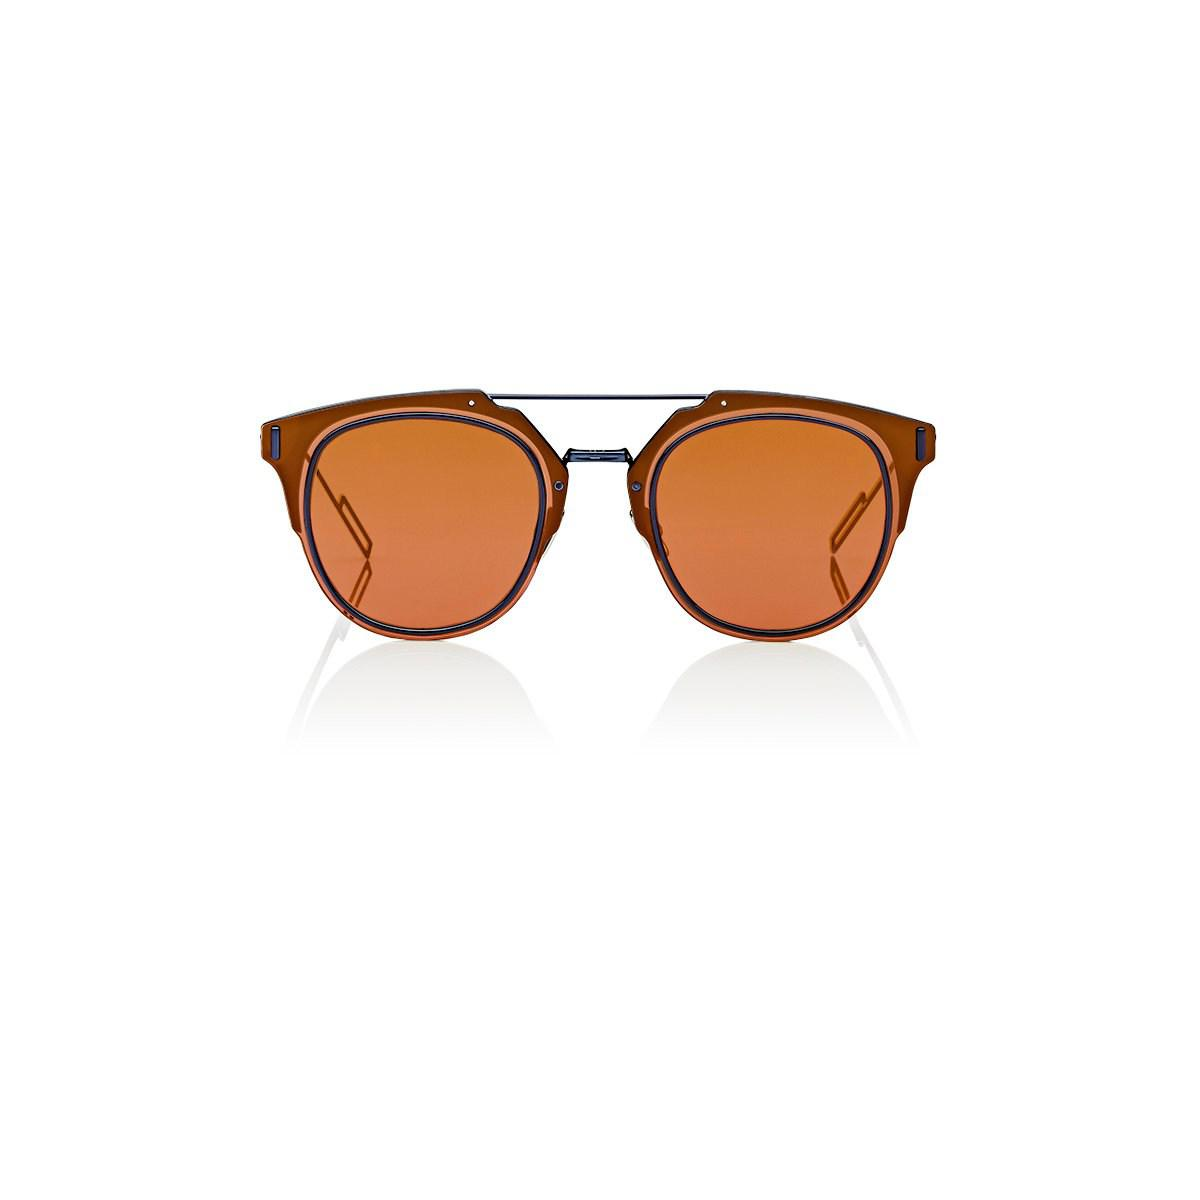 ae5ef2f57a7 Dior Homme dior Composit 1.0 Sunglasses in Orange for Men - Lyst